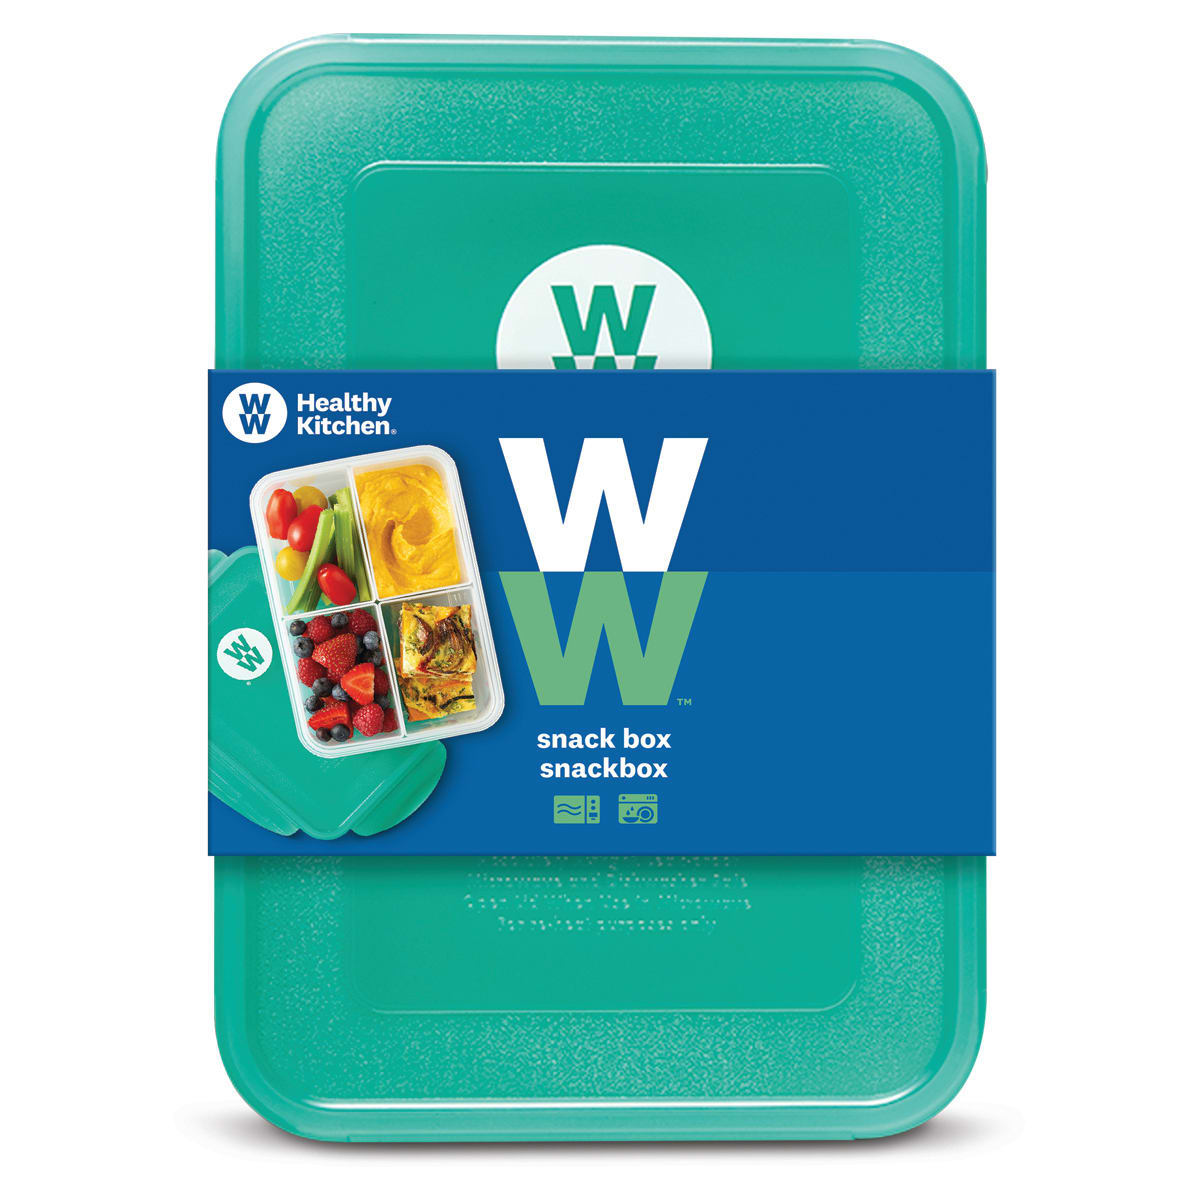 WW Snack Box, removable dividers to separate snack combinations, suitable for use in freezer and microwave, dishwasher safe, size: 22x15, 5x7cm, capacity: 1.5L